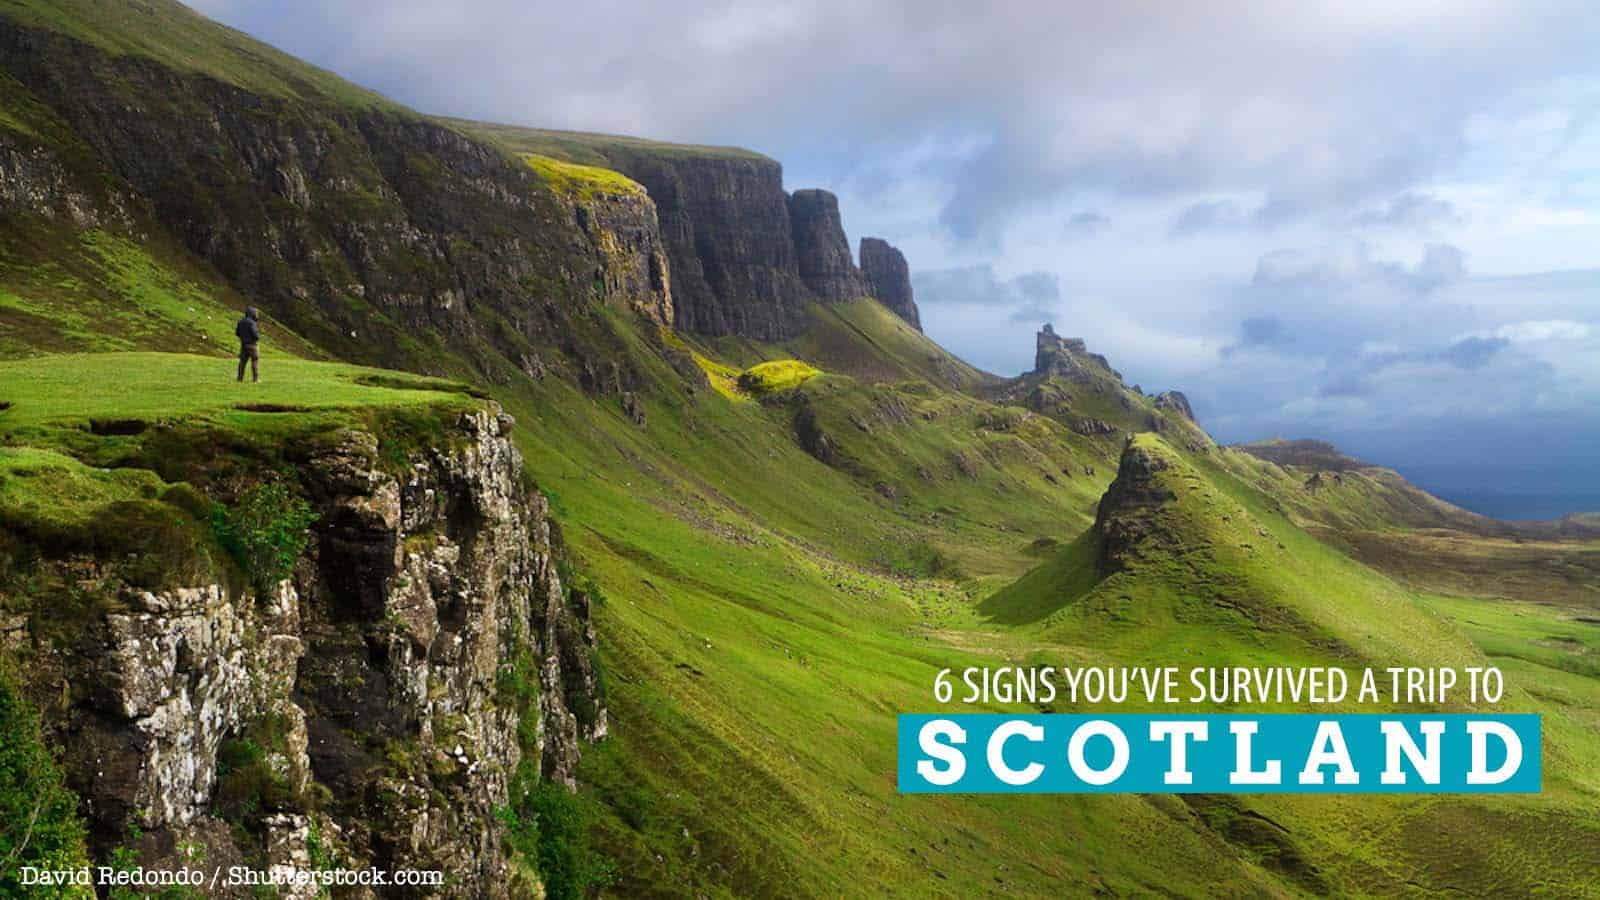 6 Signs You've Survived a Trip to Scotland